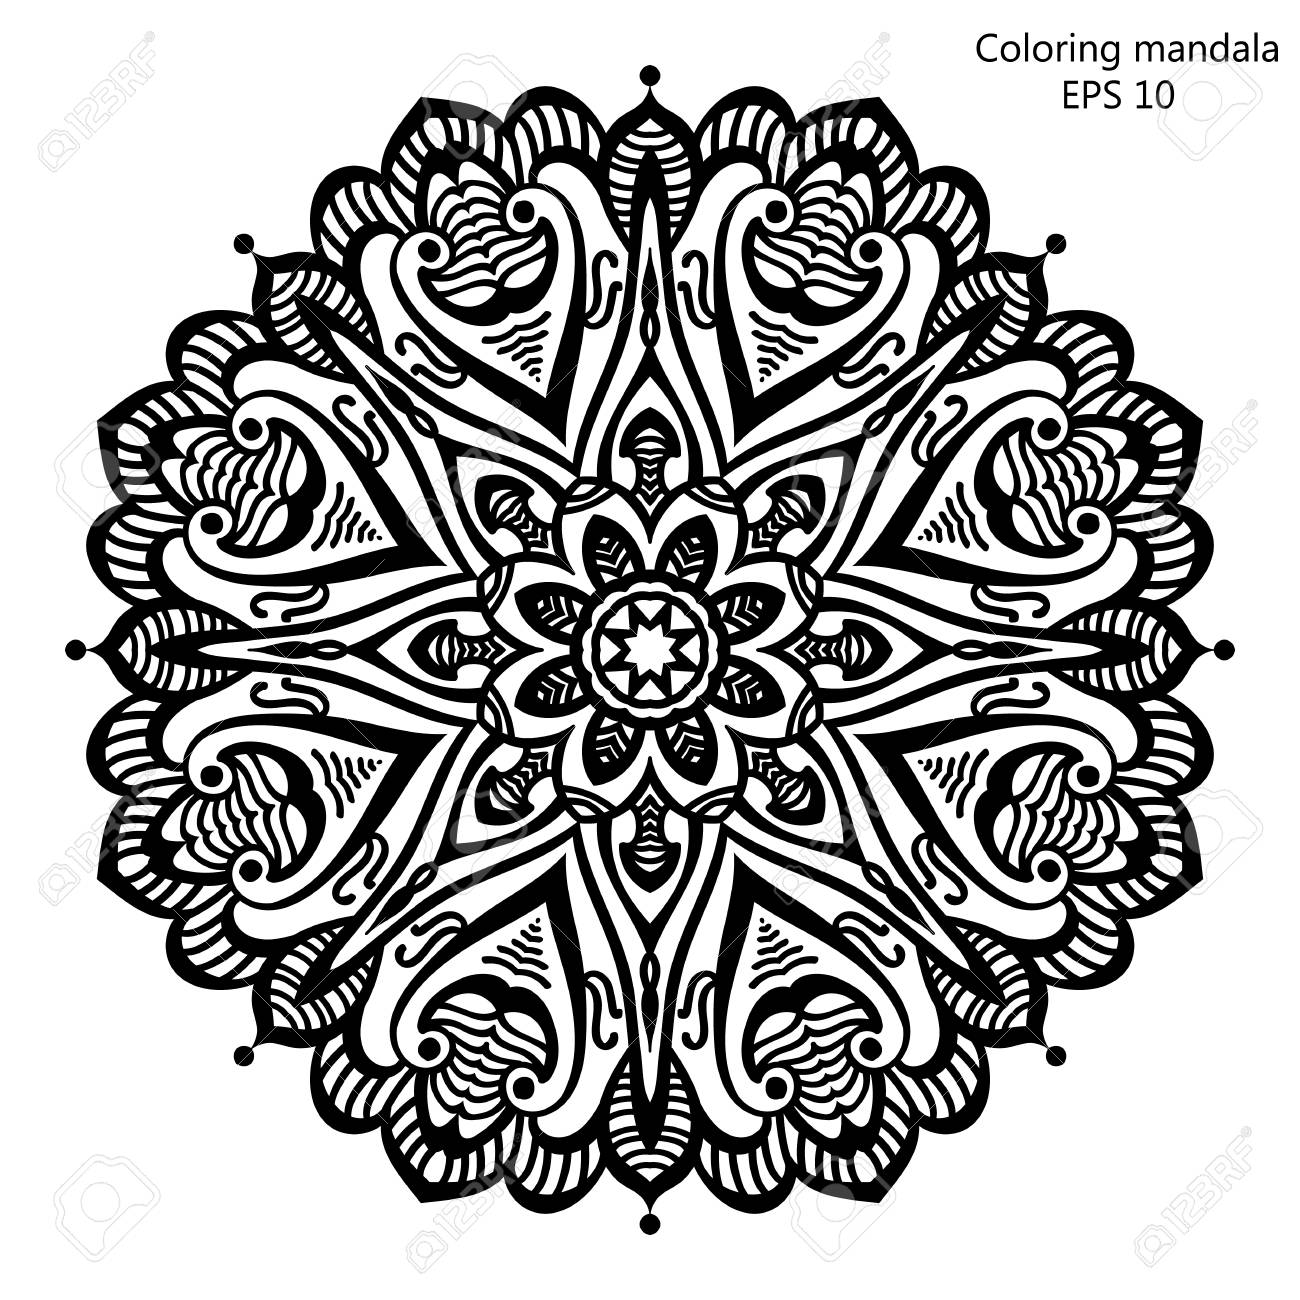 Vector Illustration Coloring Book For Adult And Older Children Page With Mandala Made Of Decorative Vintage